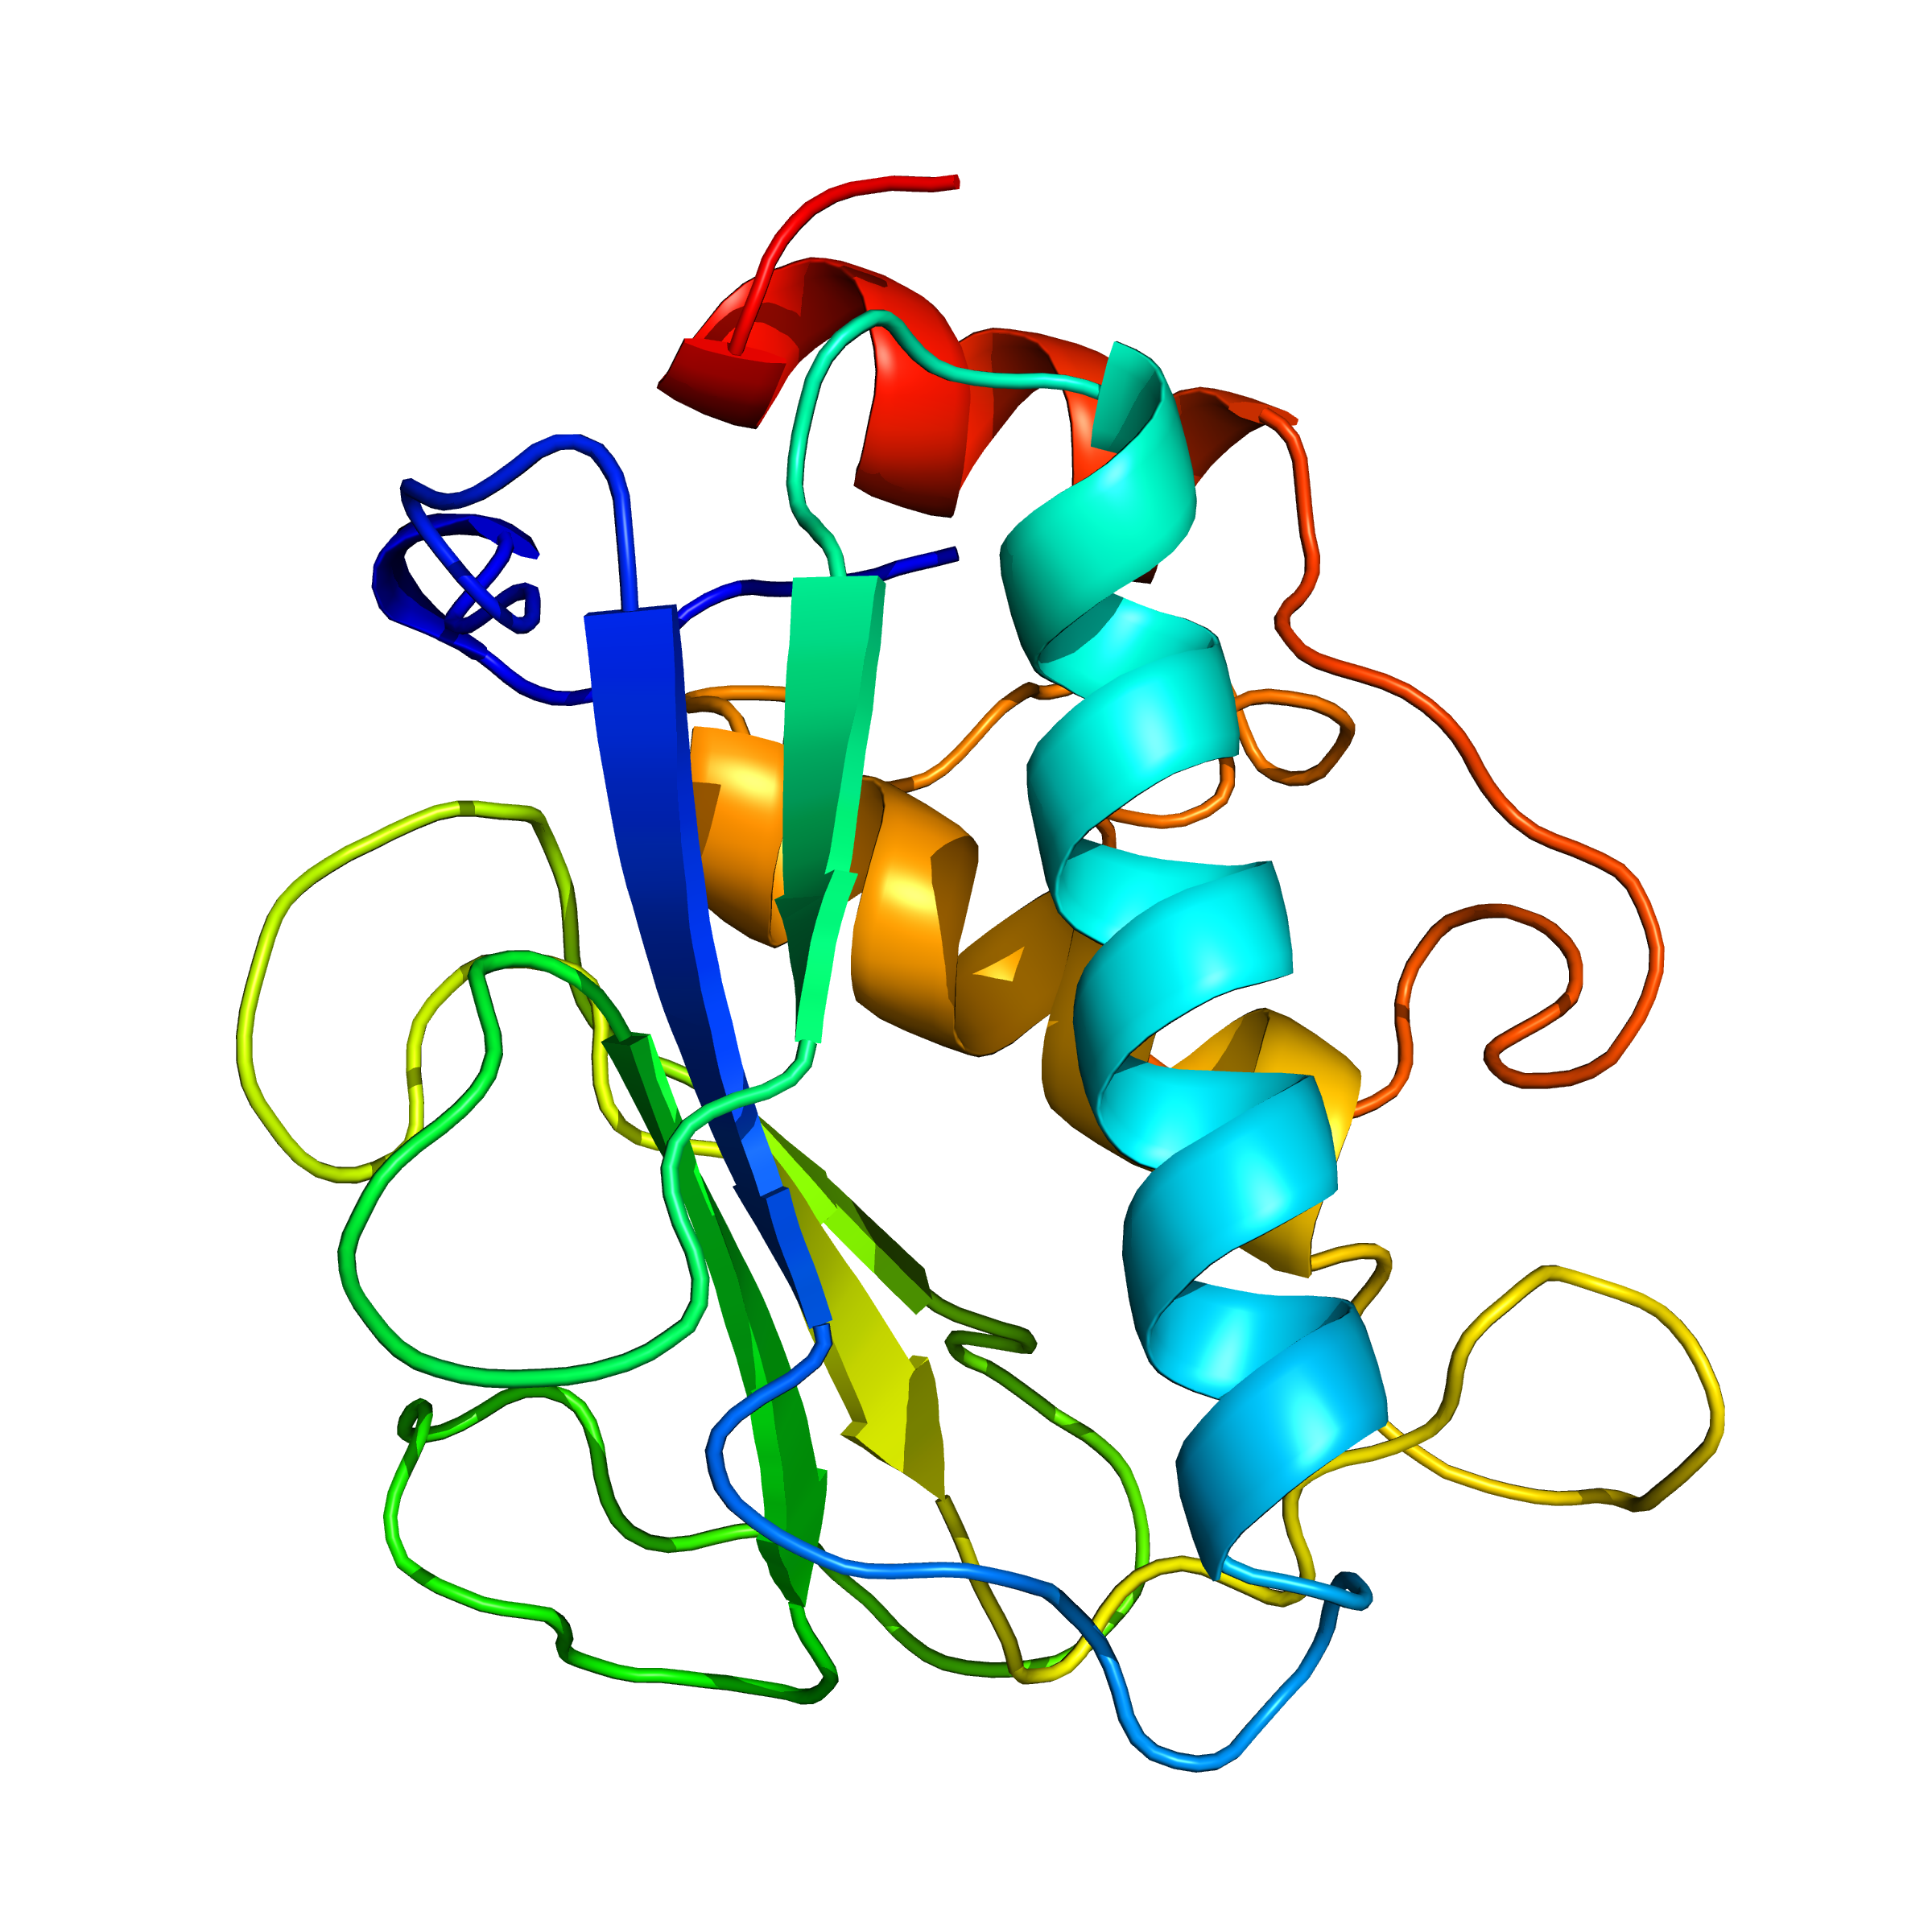 mmp7 | recombinant proteins offer